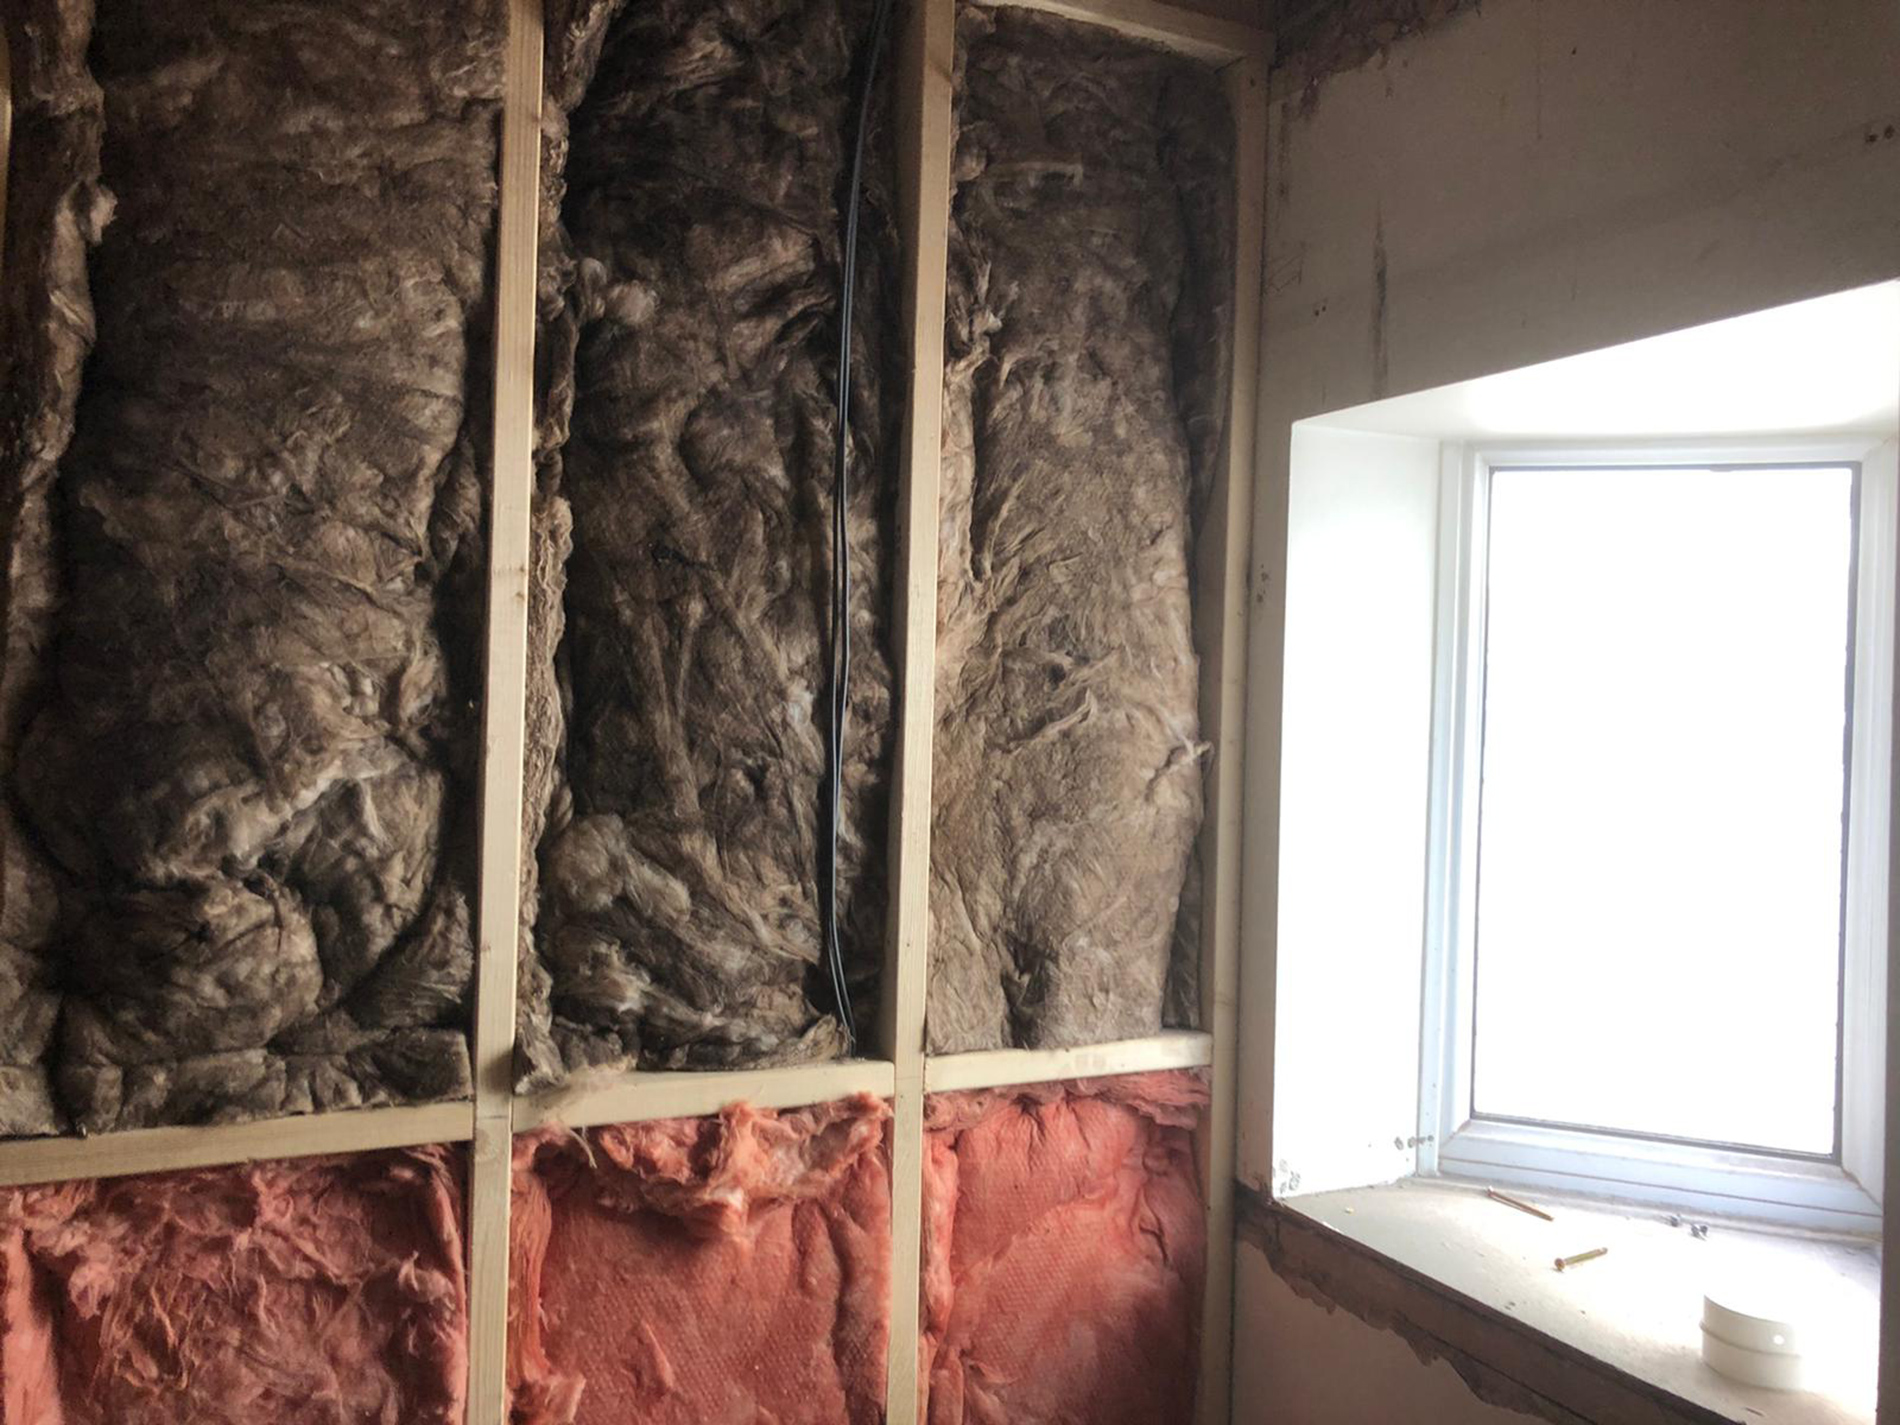 Installing-the-wall-cavity-insulation